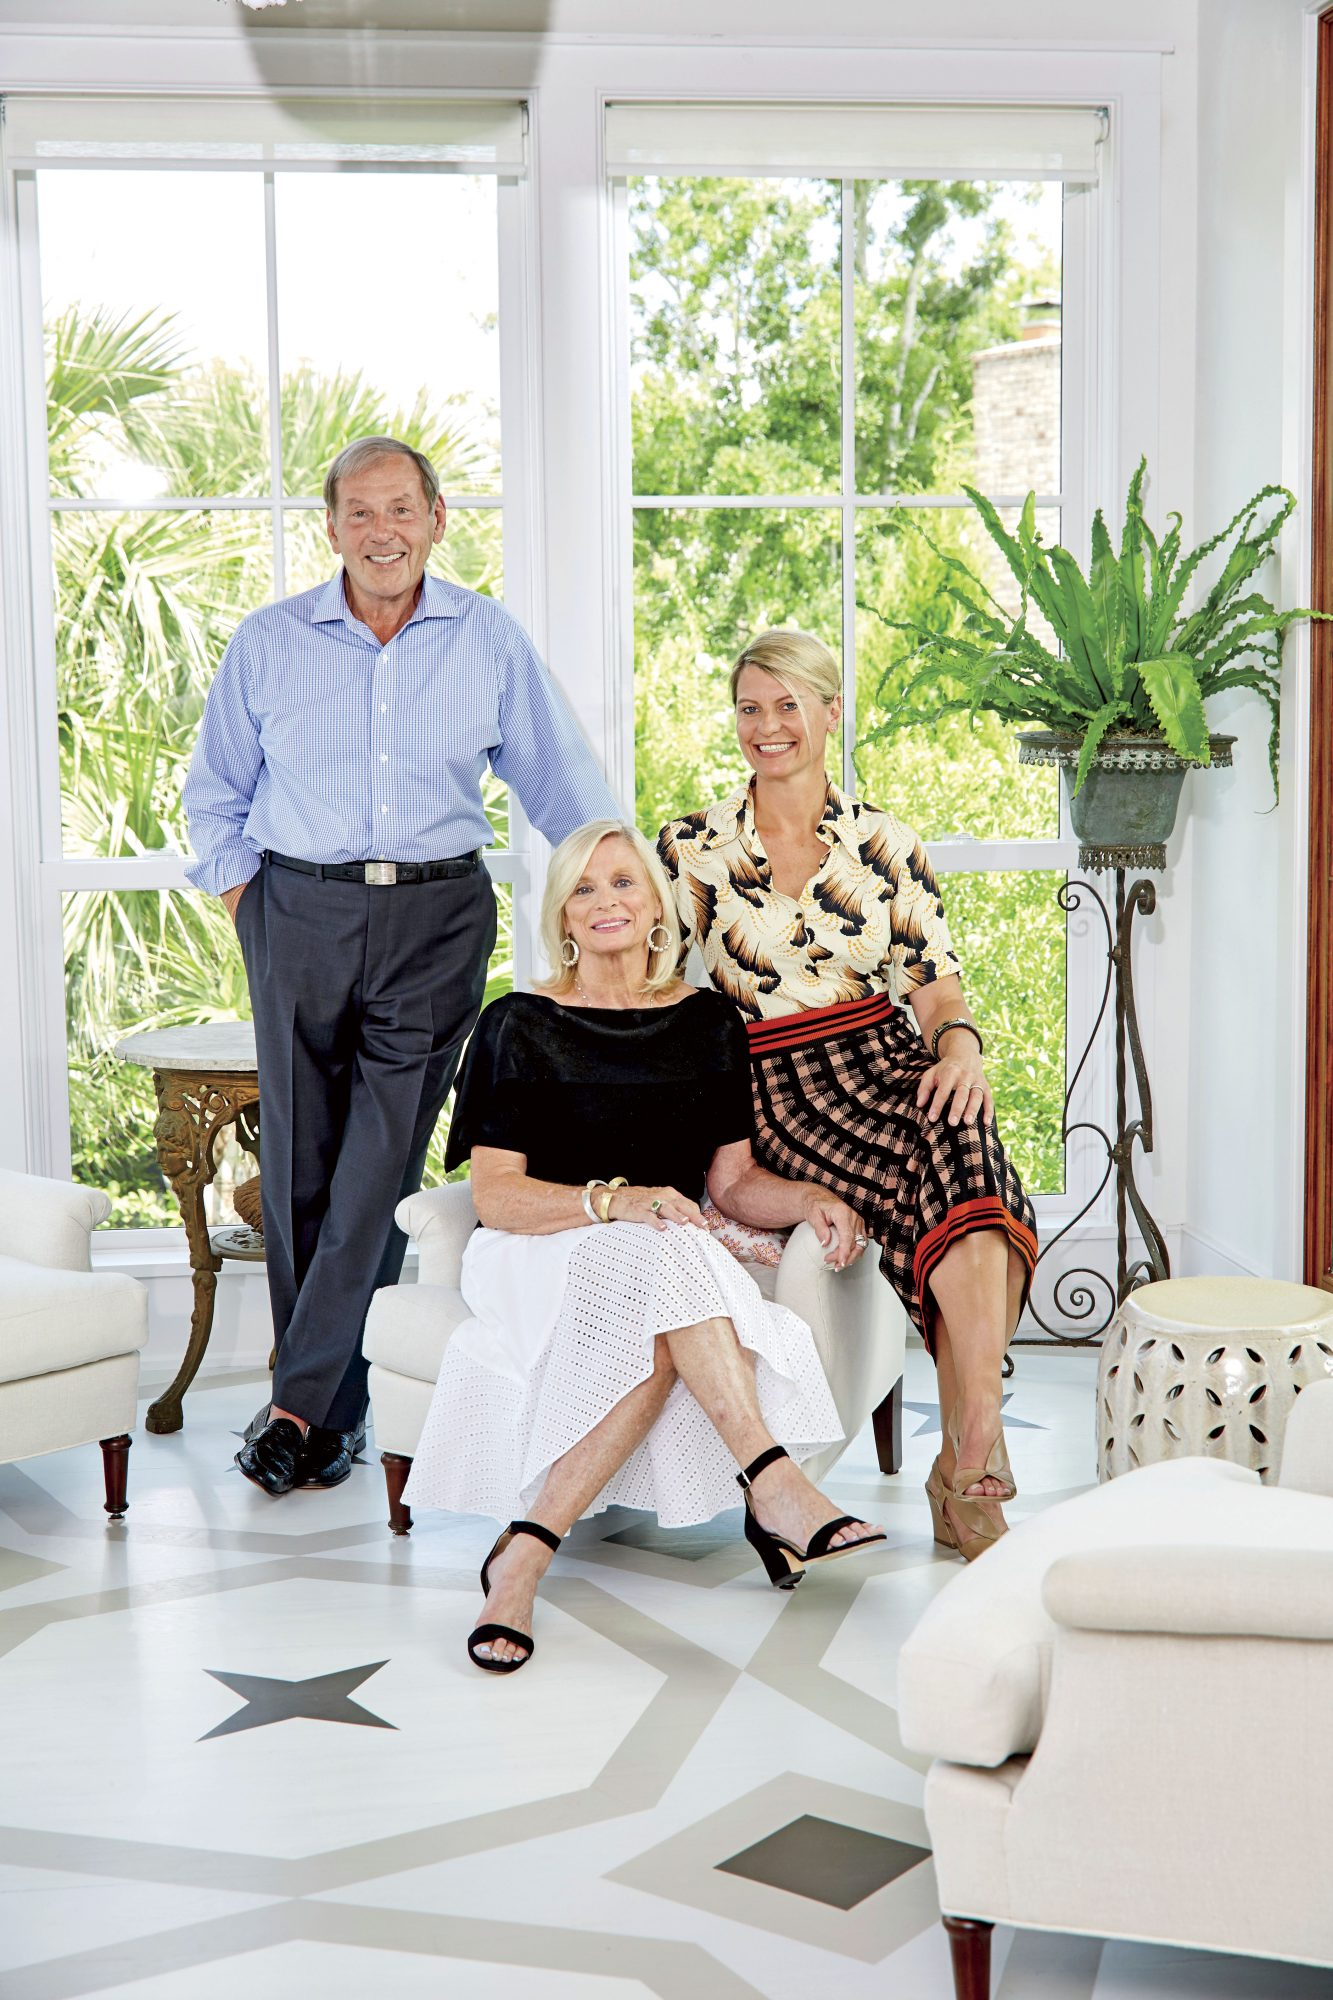 Jenny Keenan and Her Parents Joan and John Hackenberg in Their Home in Mount Pleasant, SC